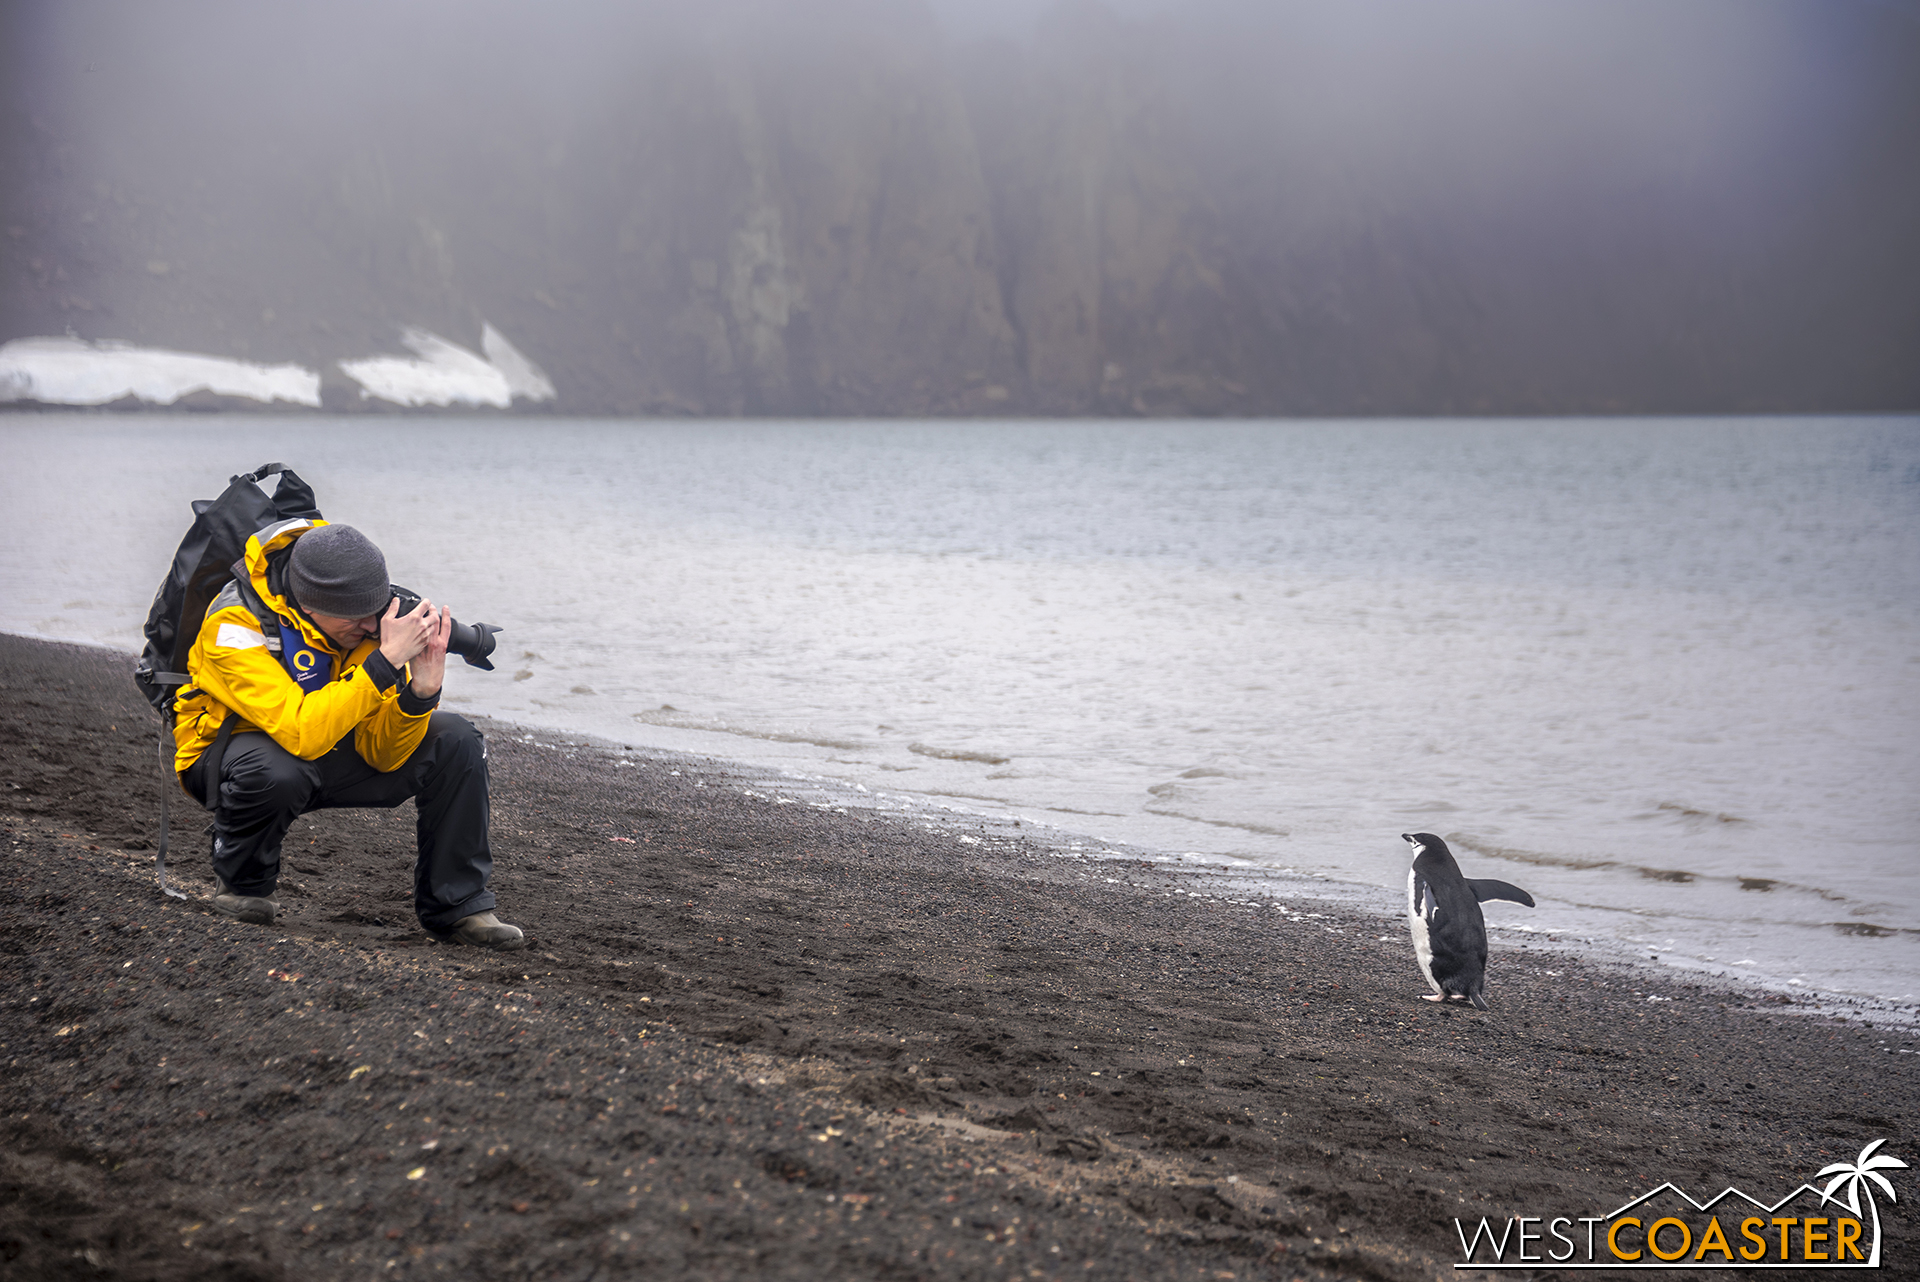 The penguins are subject to numerous photographers and photo takers.